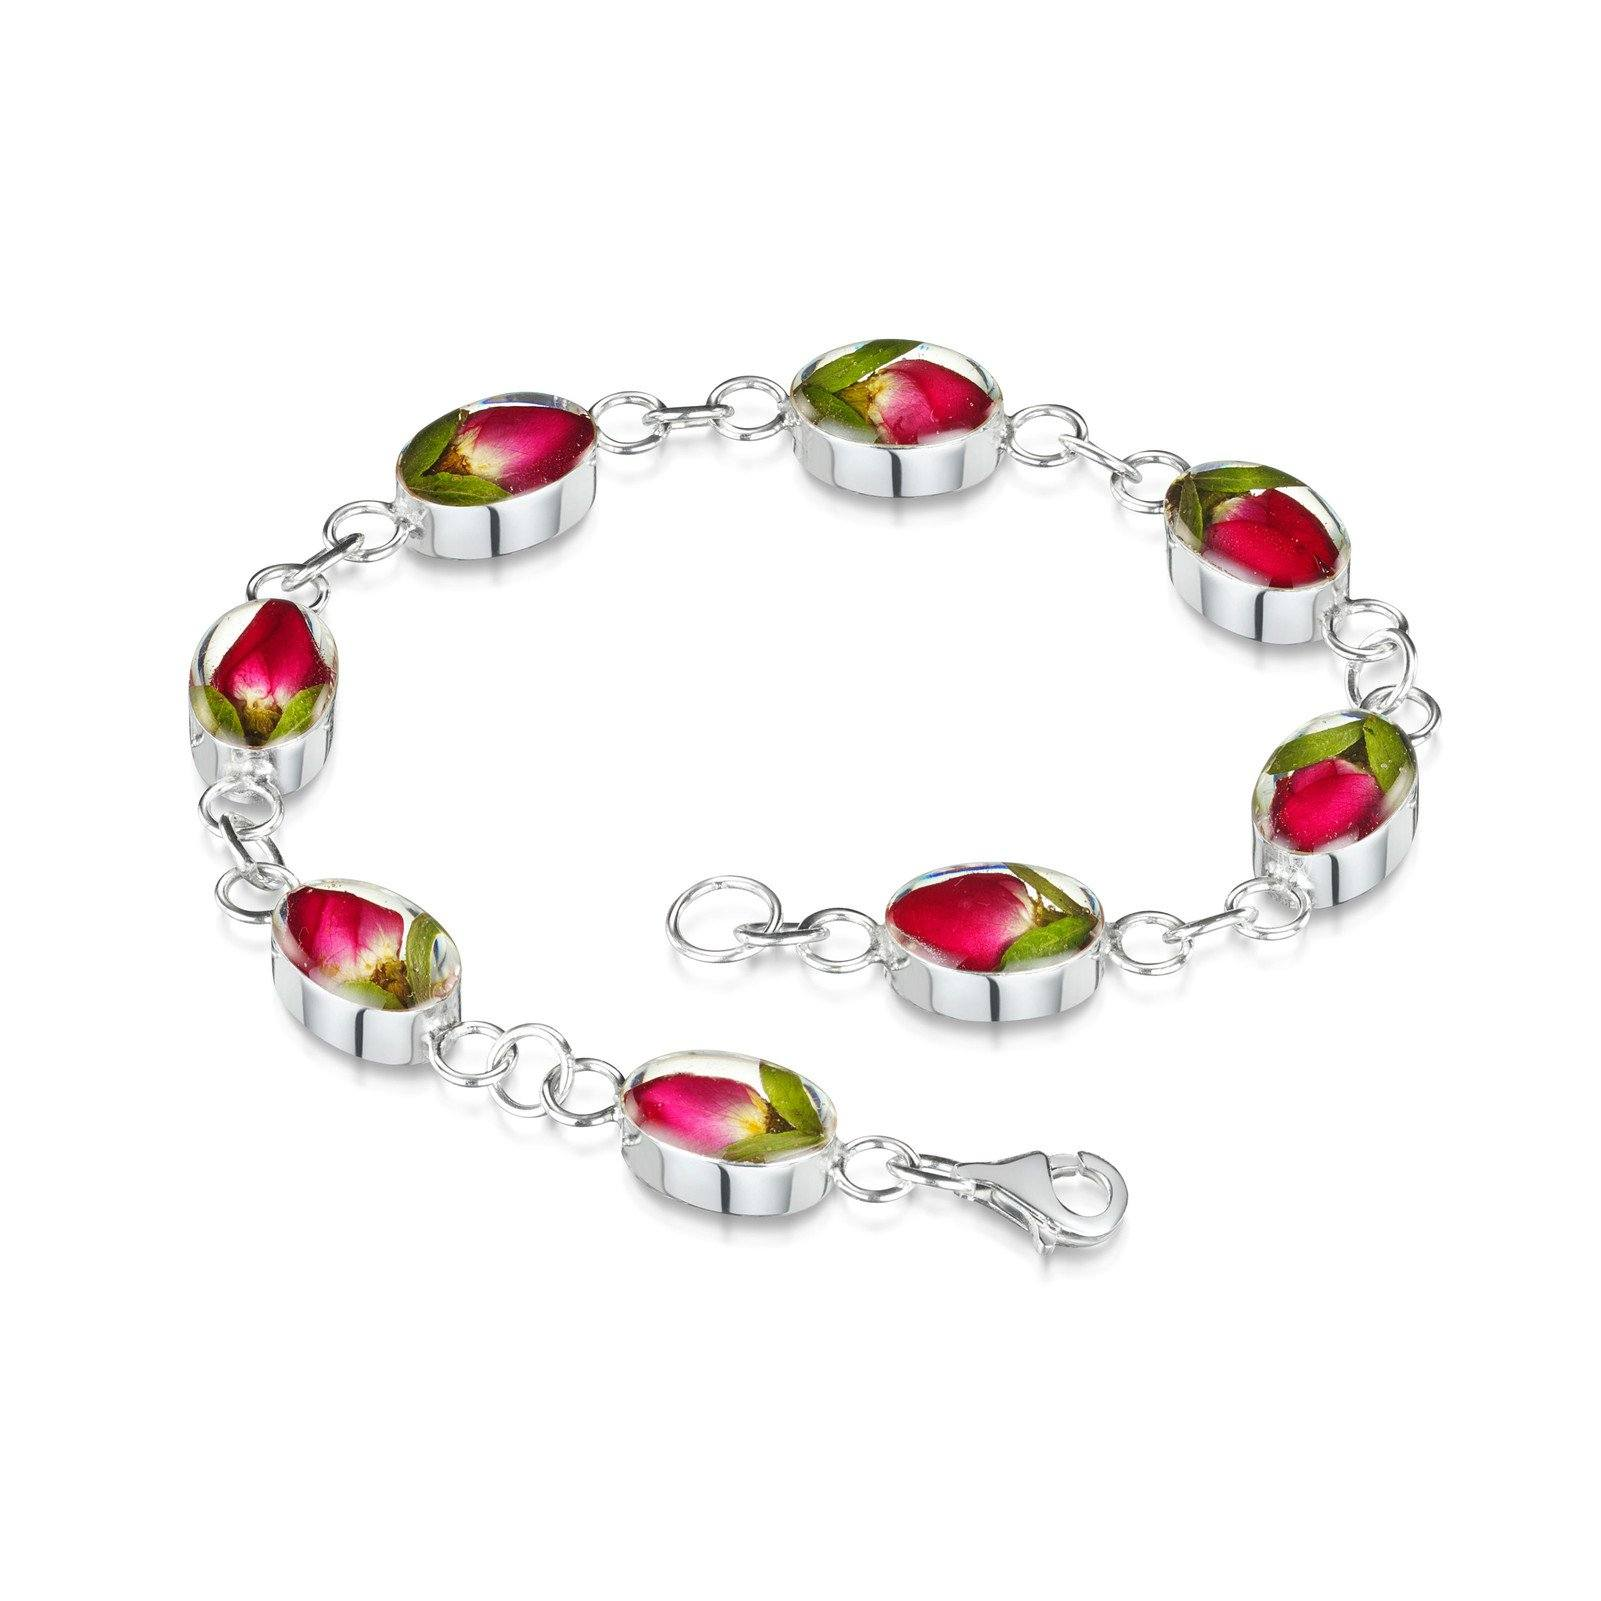 Real Flower Rose Bud Bracelet with Oval Links